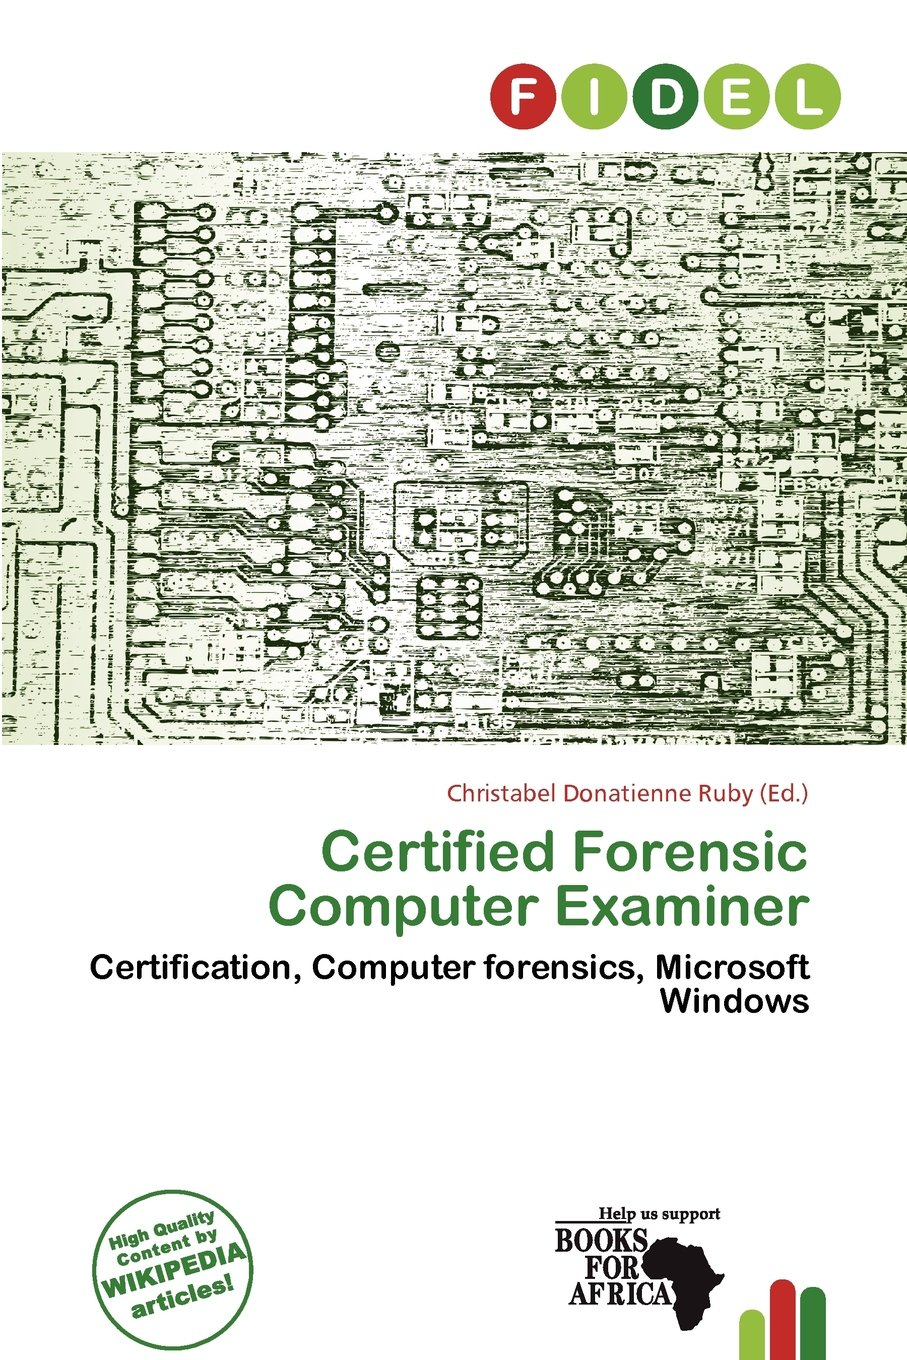 Certified Forensic Computer Examiner Christabel Donatienne Ruby